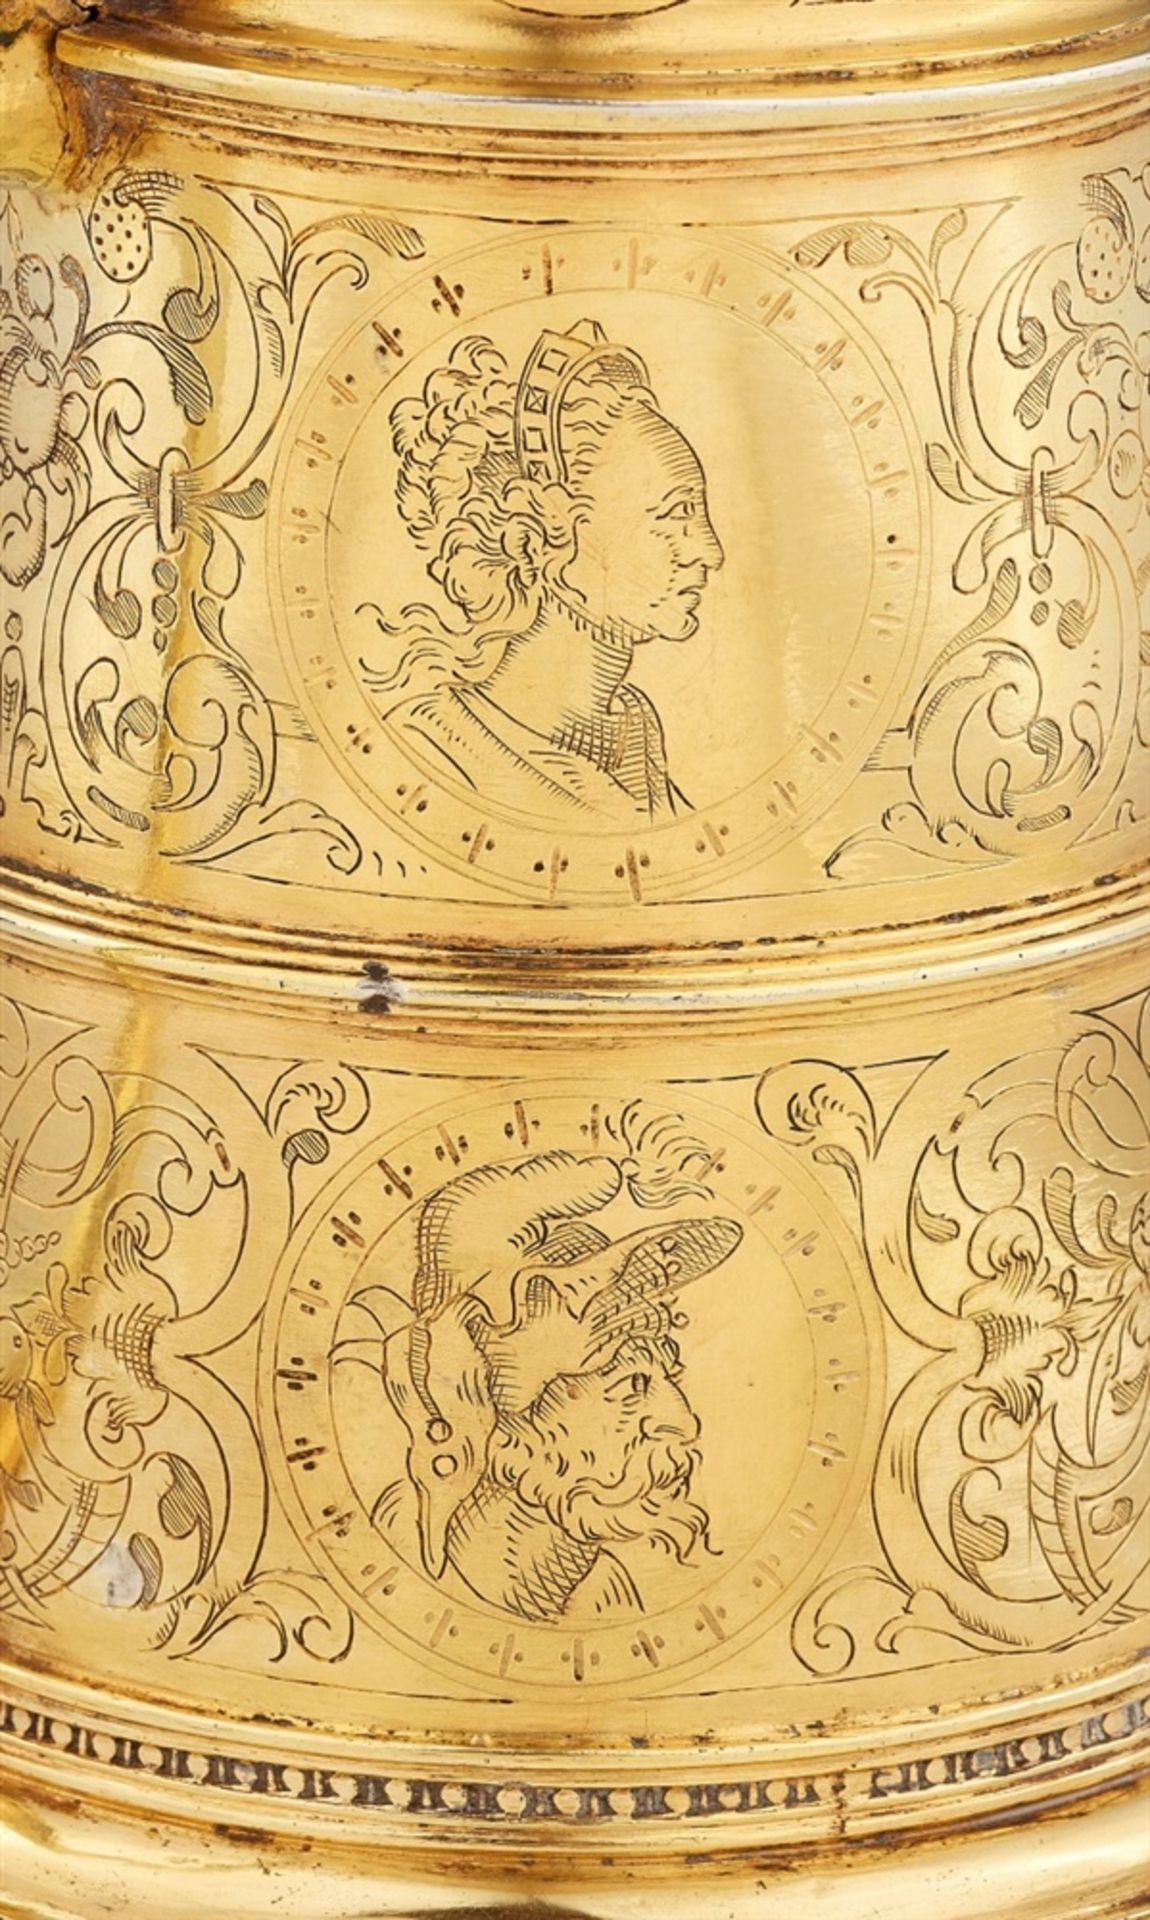 Los 700 - A Renaissance silver tankardSilver-gilt tankard with a smooth base and scrolling handle. With a